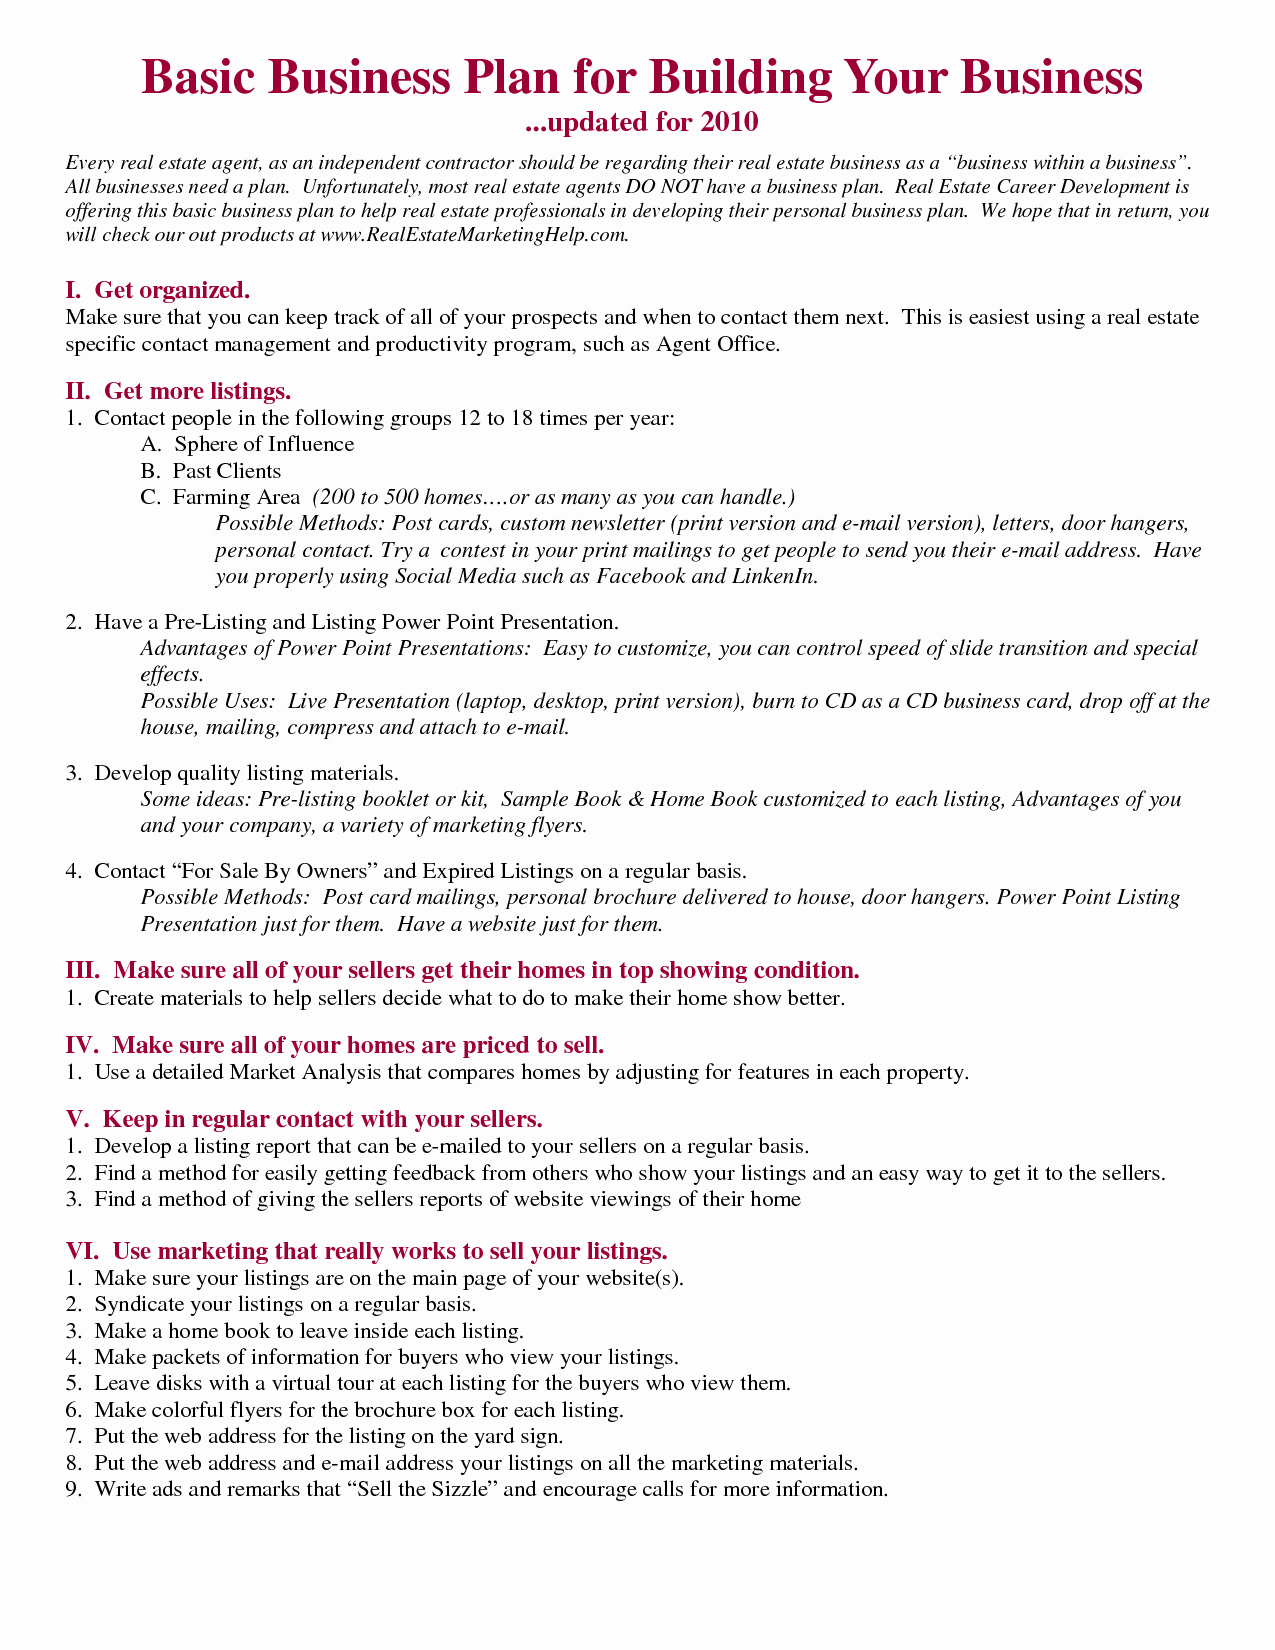 Realtor Business Plan Template Awesome Realtors Business Plan Sample Google Search